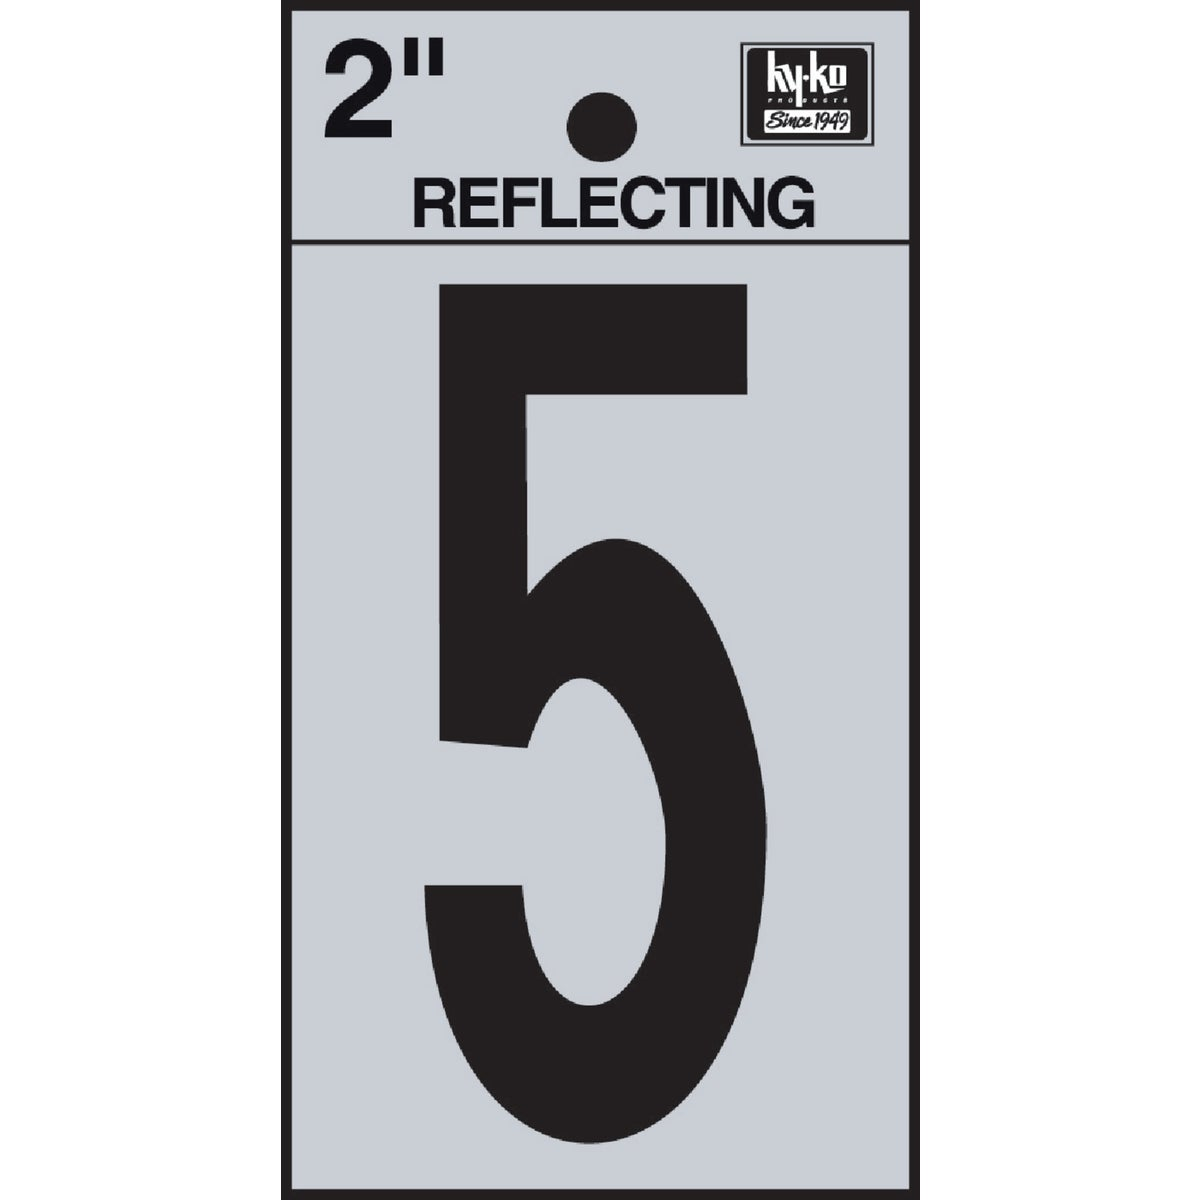 "2"" REFLECT NUMBER 5 - RV-25/5 by Hy Ko Prods Co"